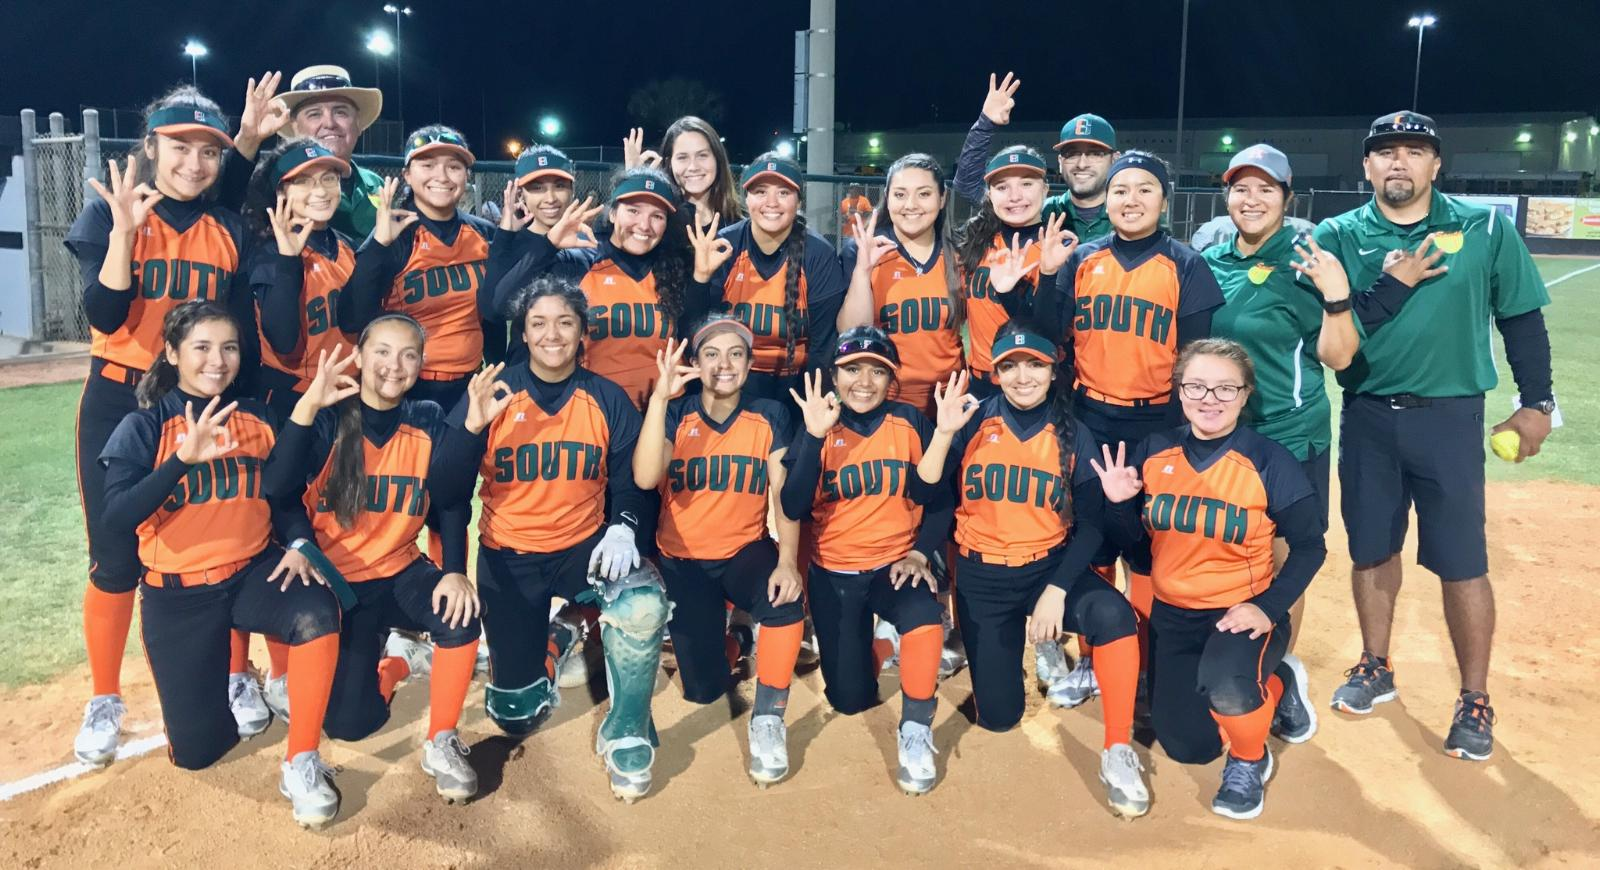 South softball team advances to Regional Quarterfinals